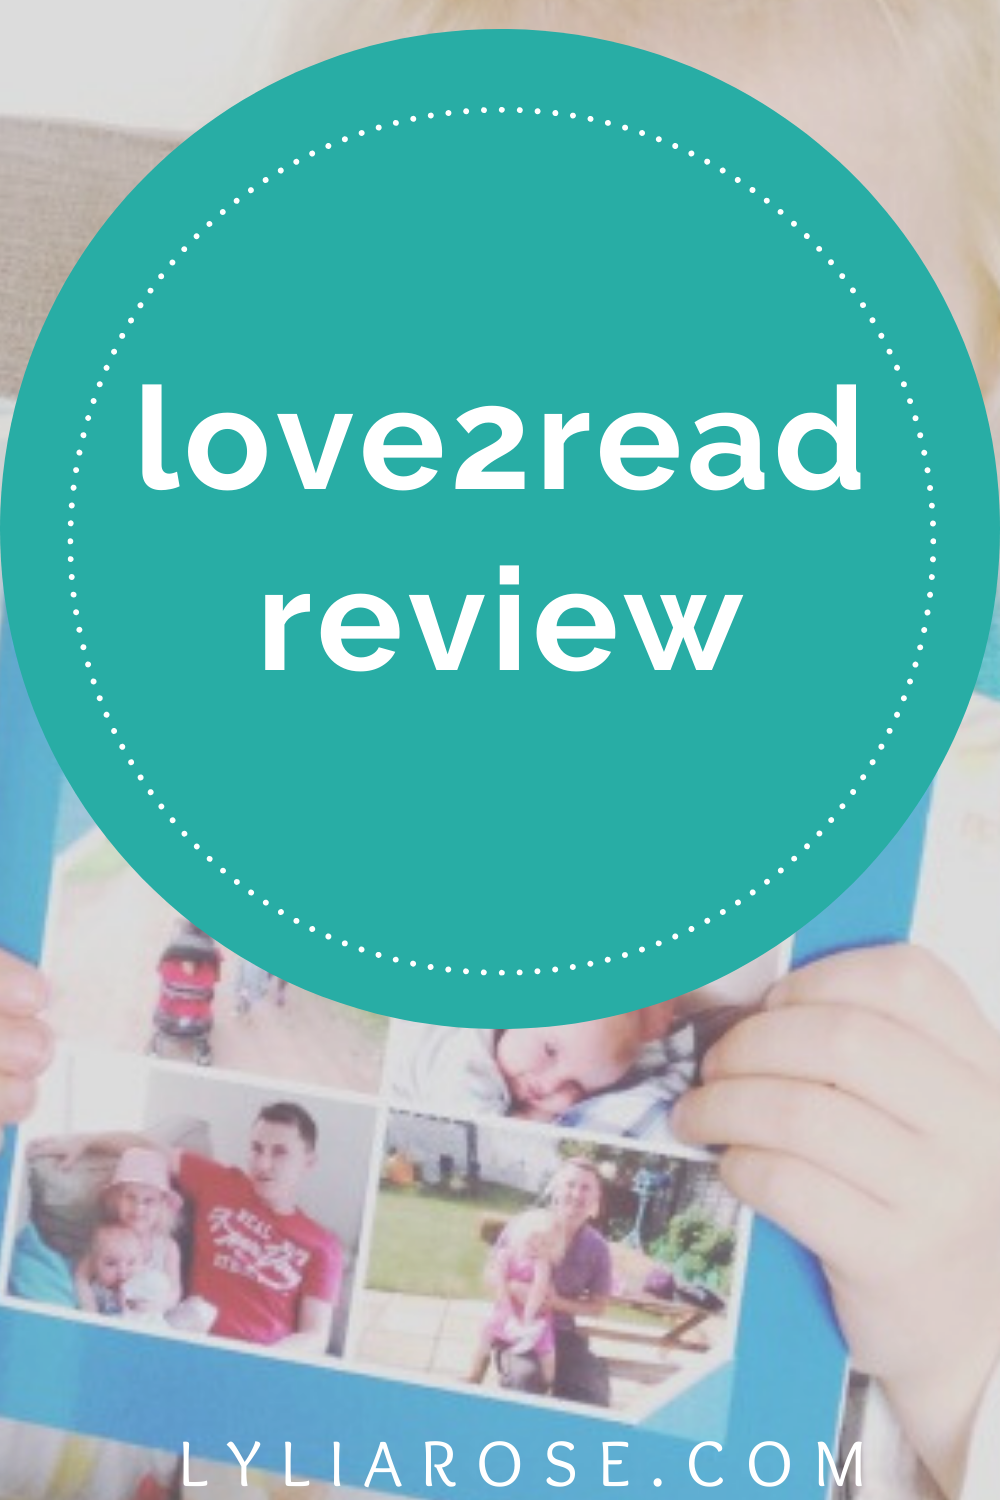 love2read review (2)